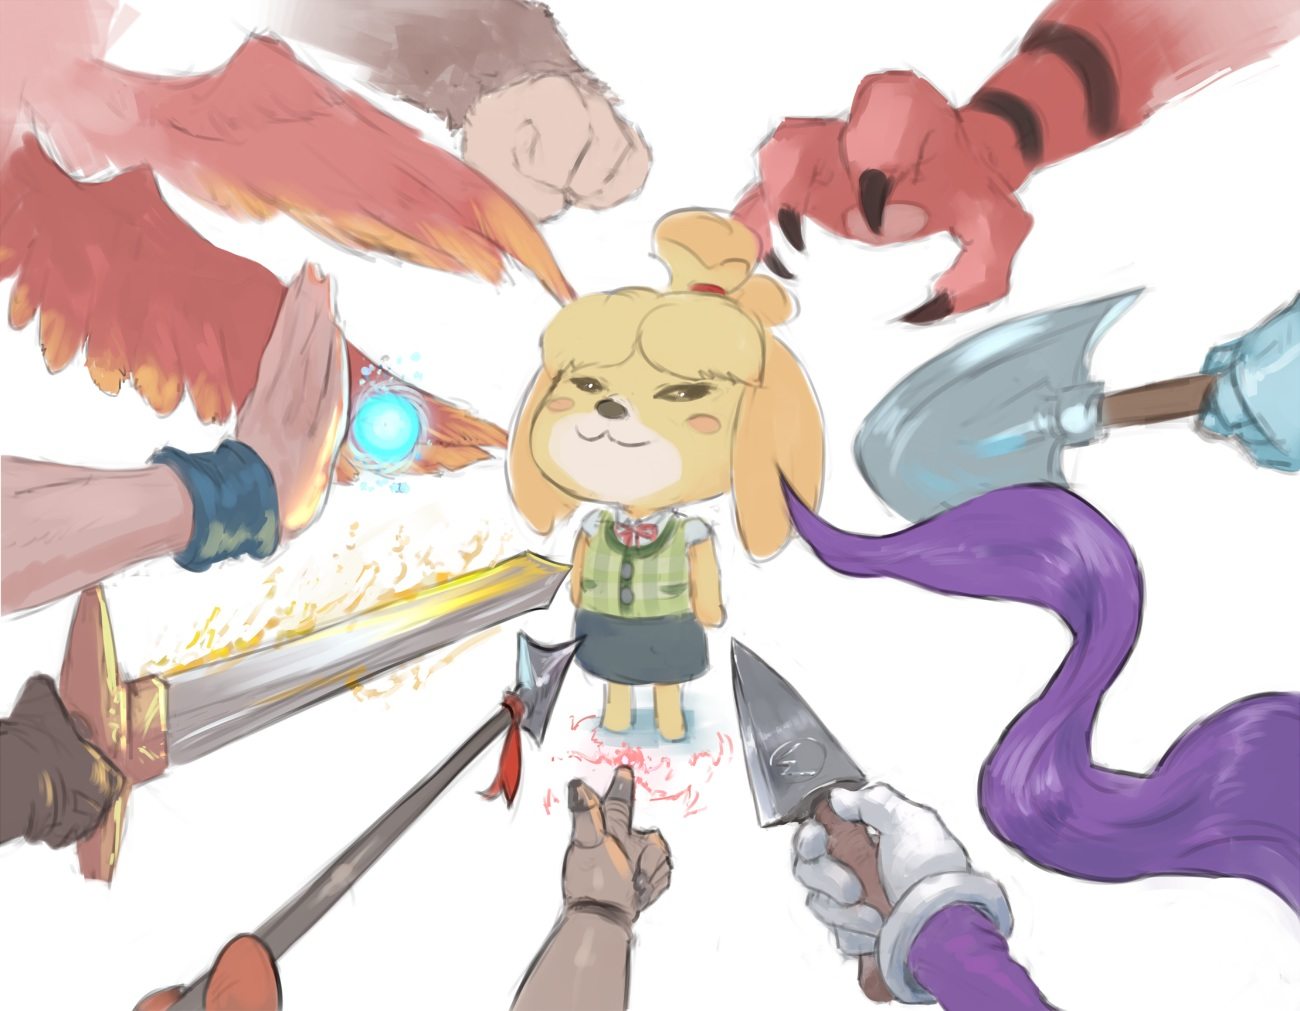 armor bandana_waddle_dee banjo_(banjo-kazooie) banjo-kazooie cat_smile crossover cutesexyrobutts doggirl doubutsu_no_mori dragonball fire geno_(mario) gloves golden_sun group kazooie_(banjo-kazooie) kirby long_hair magic parody pokemon purple_hair robin_(golden_sun) shantae_(character) shantae:_half_genie_hero shizue_(doubutsu_no_mori) shovel_knight shovel_knight_(character) son_goku spear super_mario super_mario_bros super_smash_bros. sword waluigi weapon wings wristwear